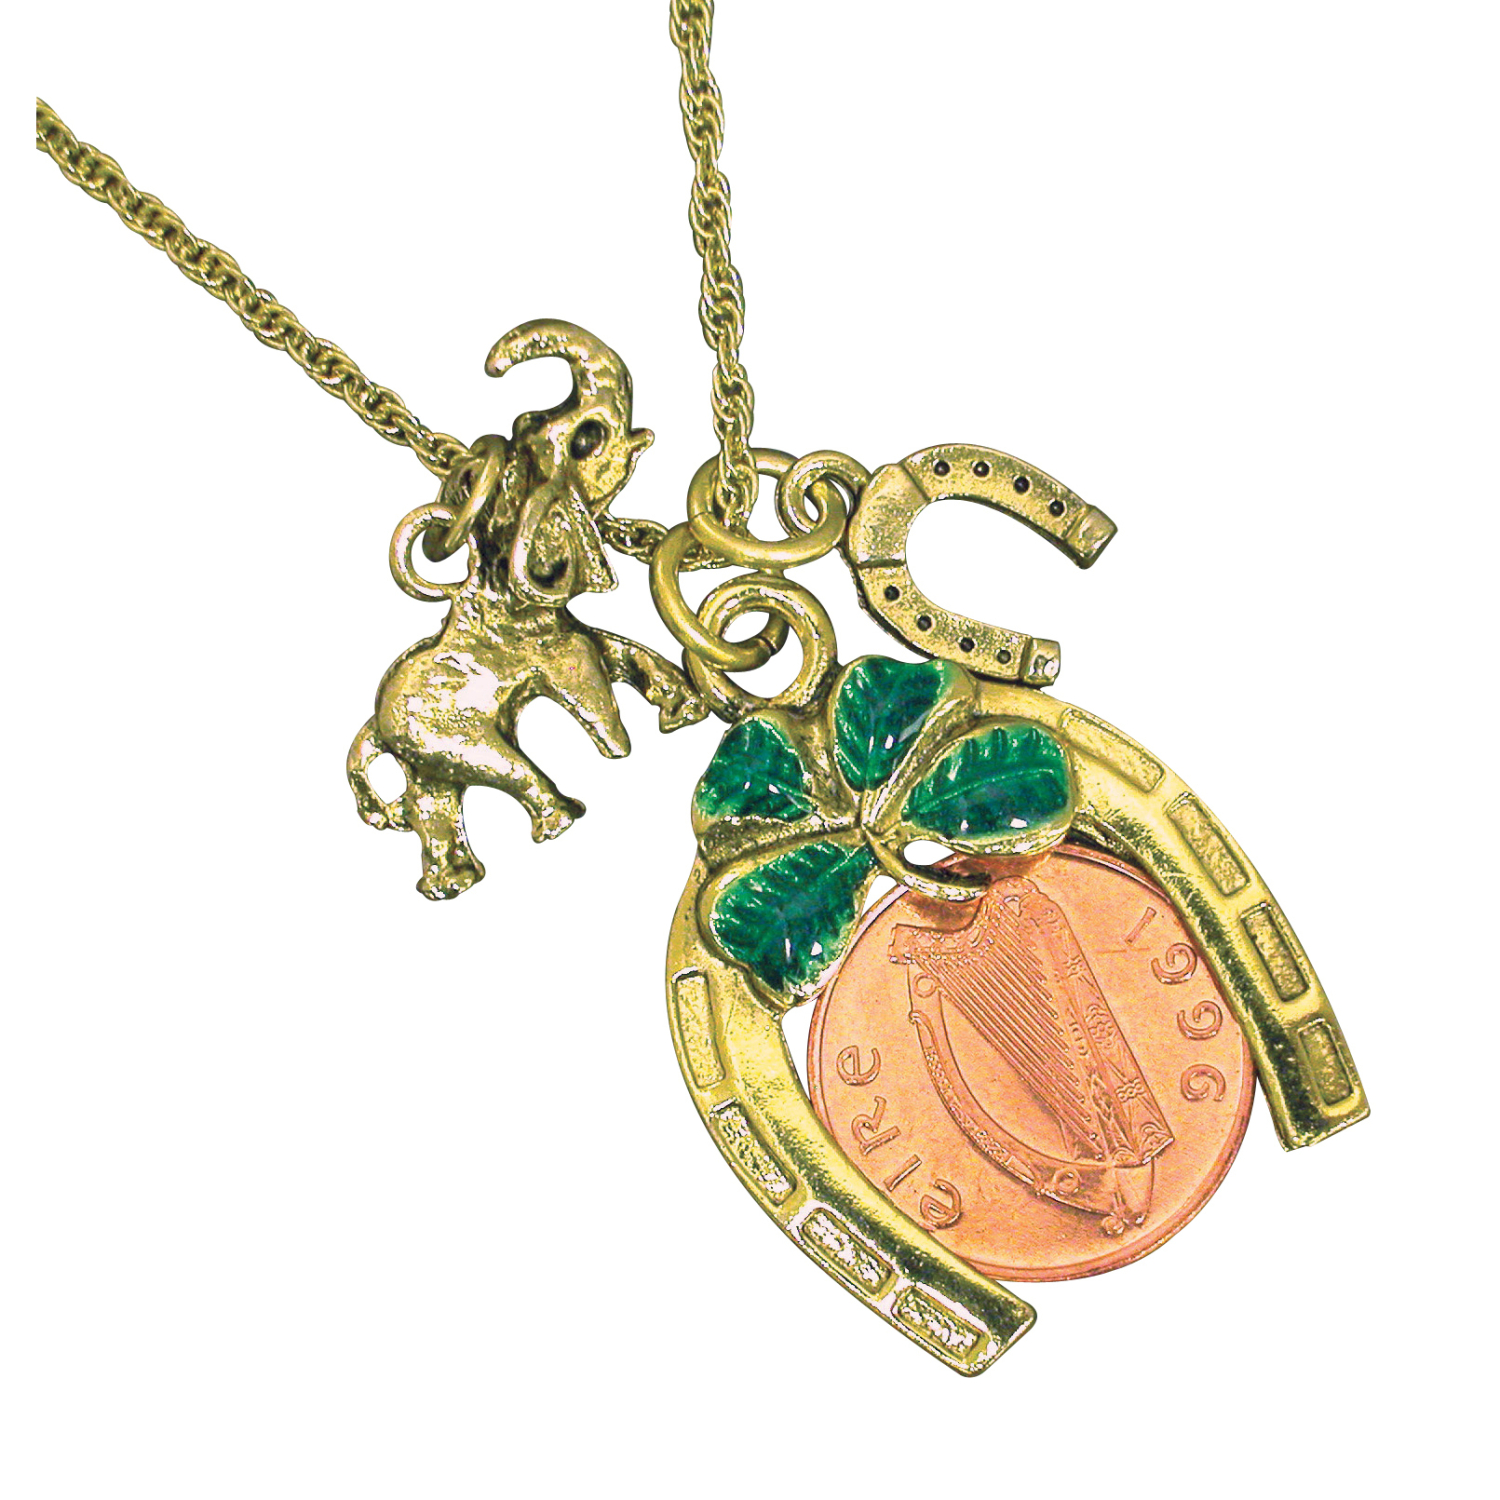 Irish Penny Coin Lotto Scratcher Charm Necklace